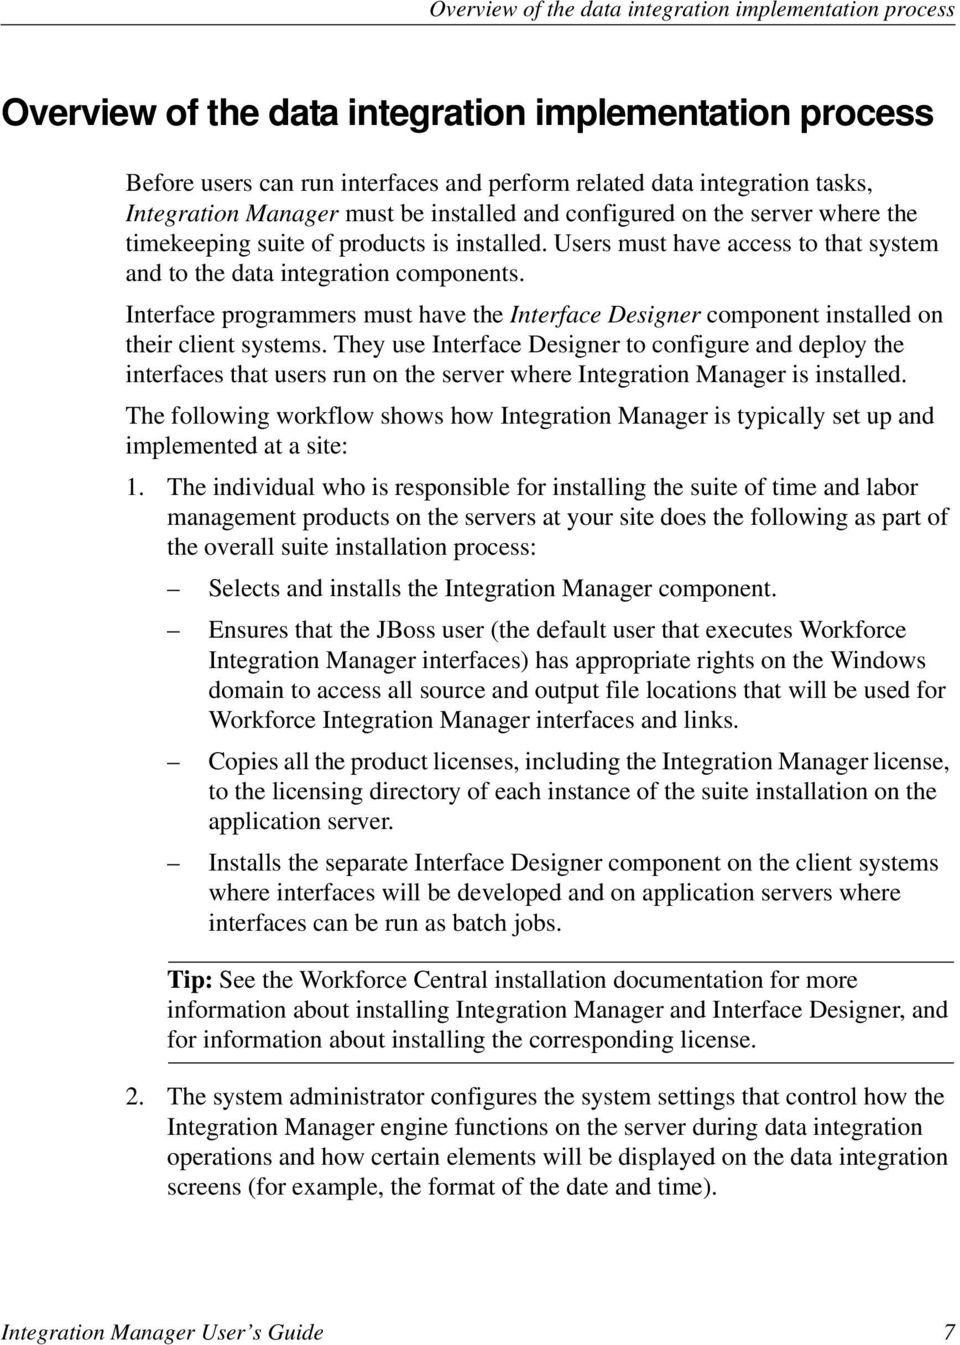 Workforce Integration Manager User S Guide Pdf